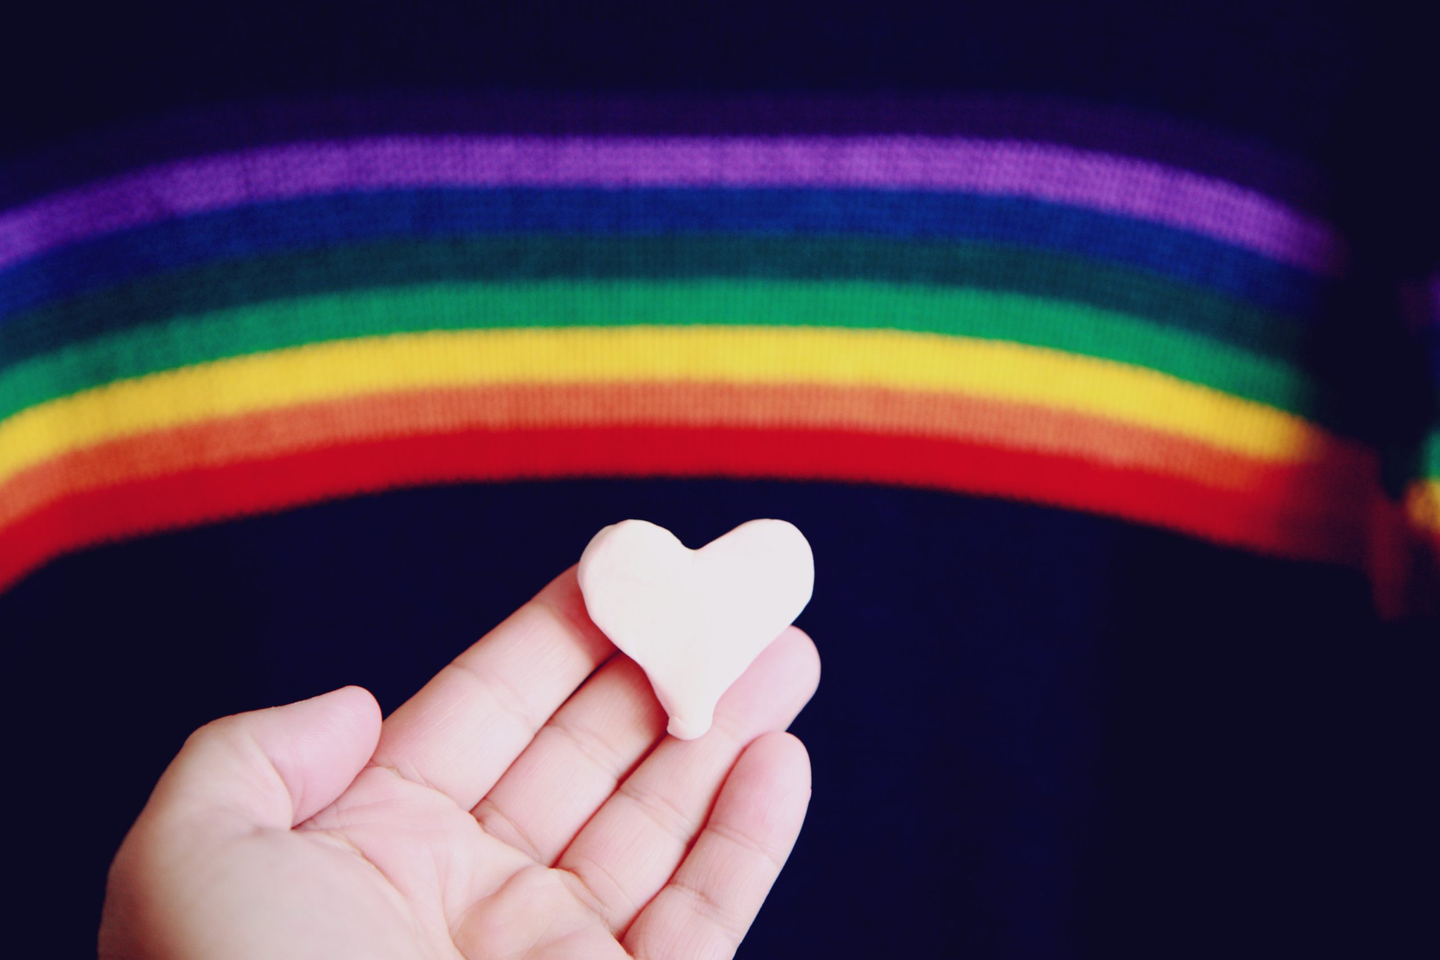 Discovering My sexuality Through Gender Transition